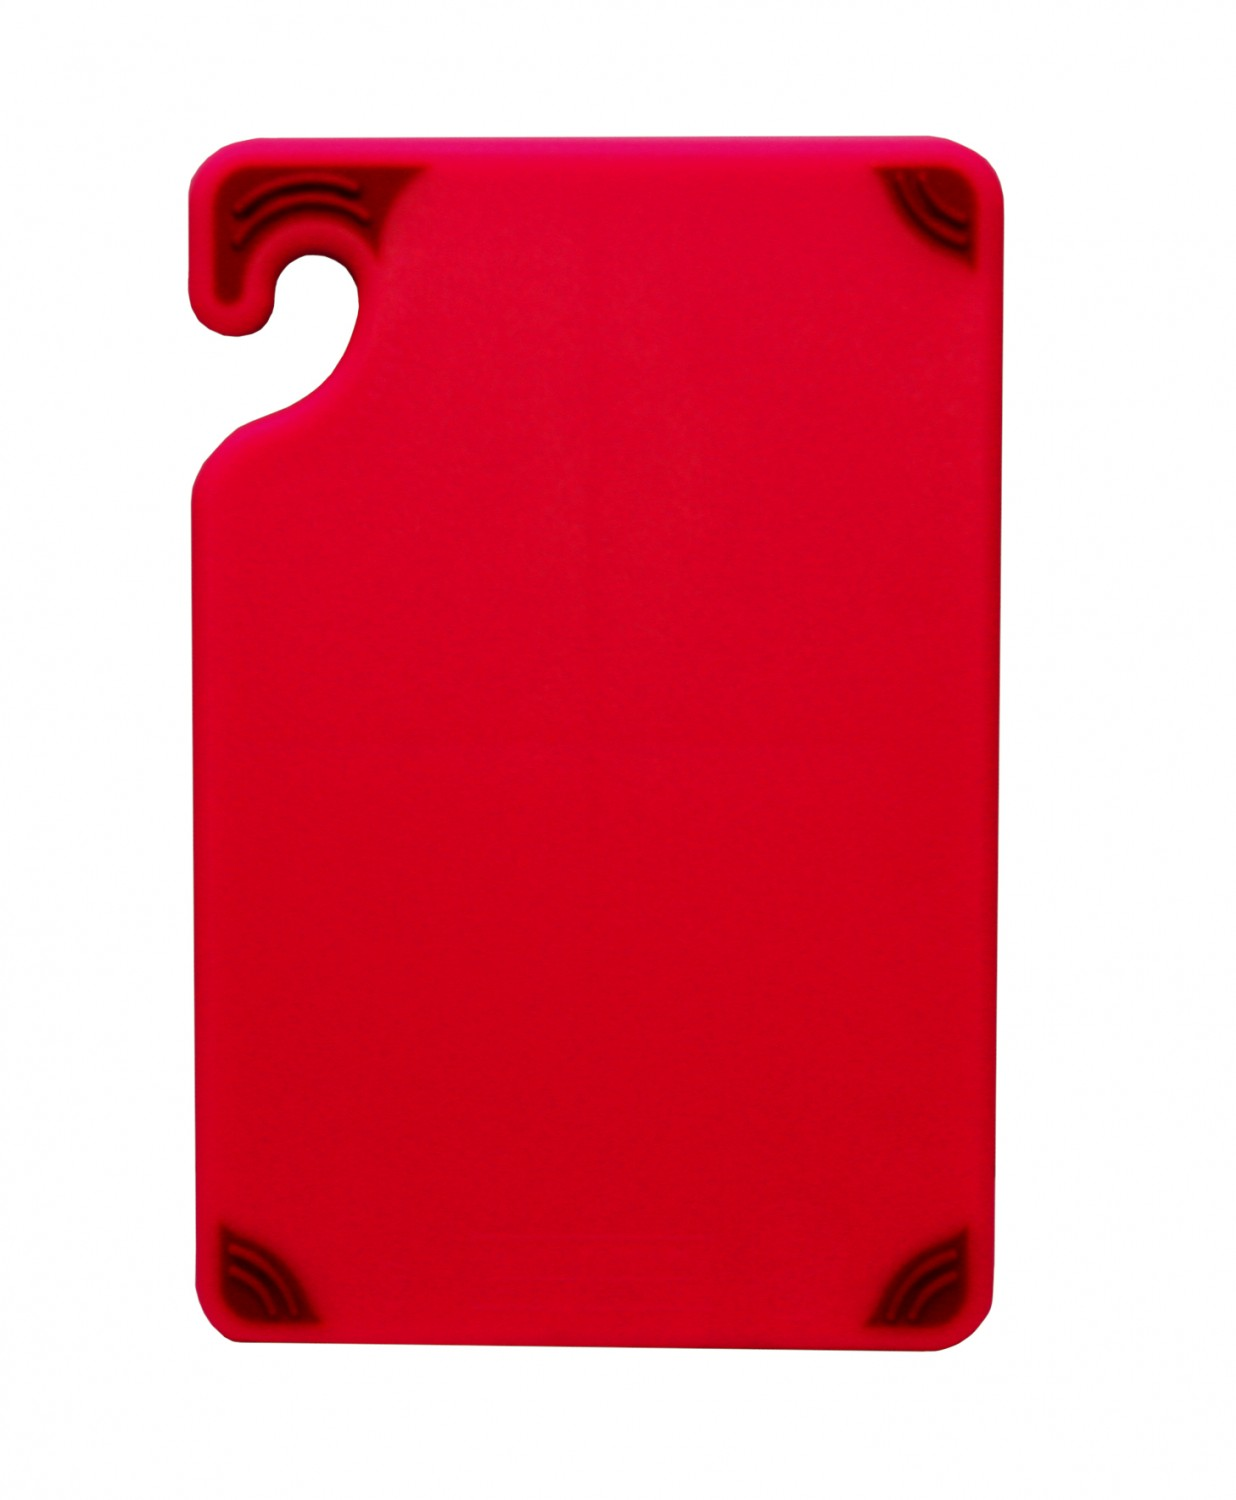 "San Jamar CBG6938RD Saf-T-Grip Non-Slip Grip Red Cutting Board 6"" x 9"""